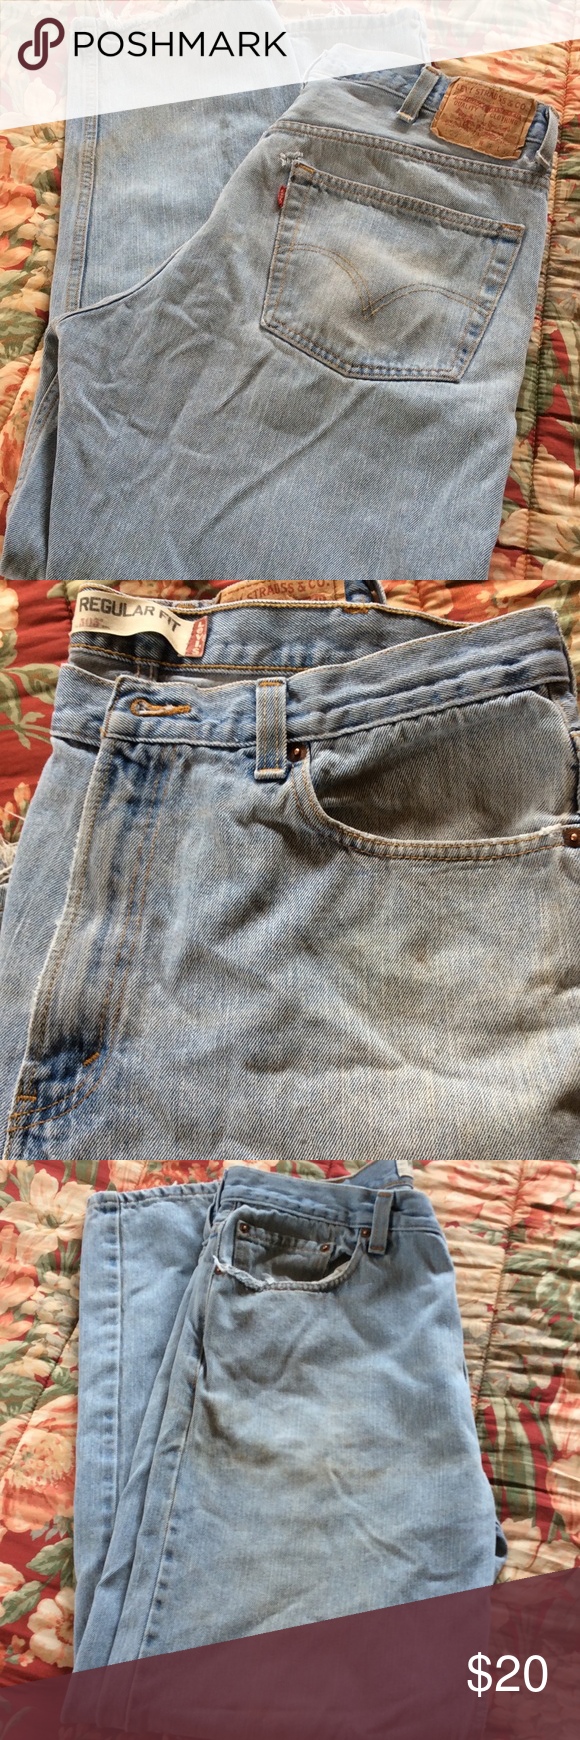 d504244f0733 Men s Levi Worn Jeans Nicely worn jeans with fray and some dirt stains.  Great jeans 503 in 38 x 32 Levi s Jeans